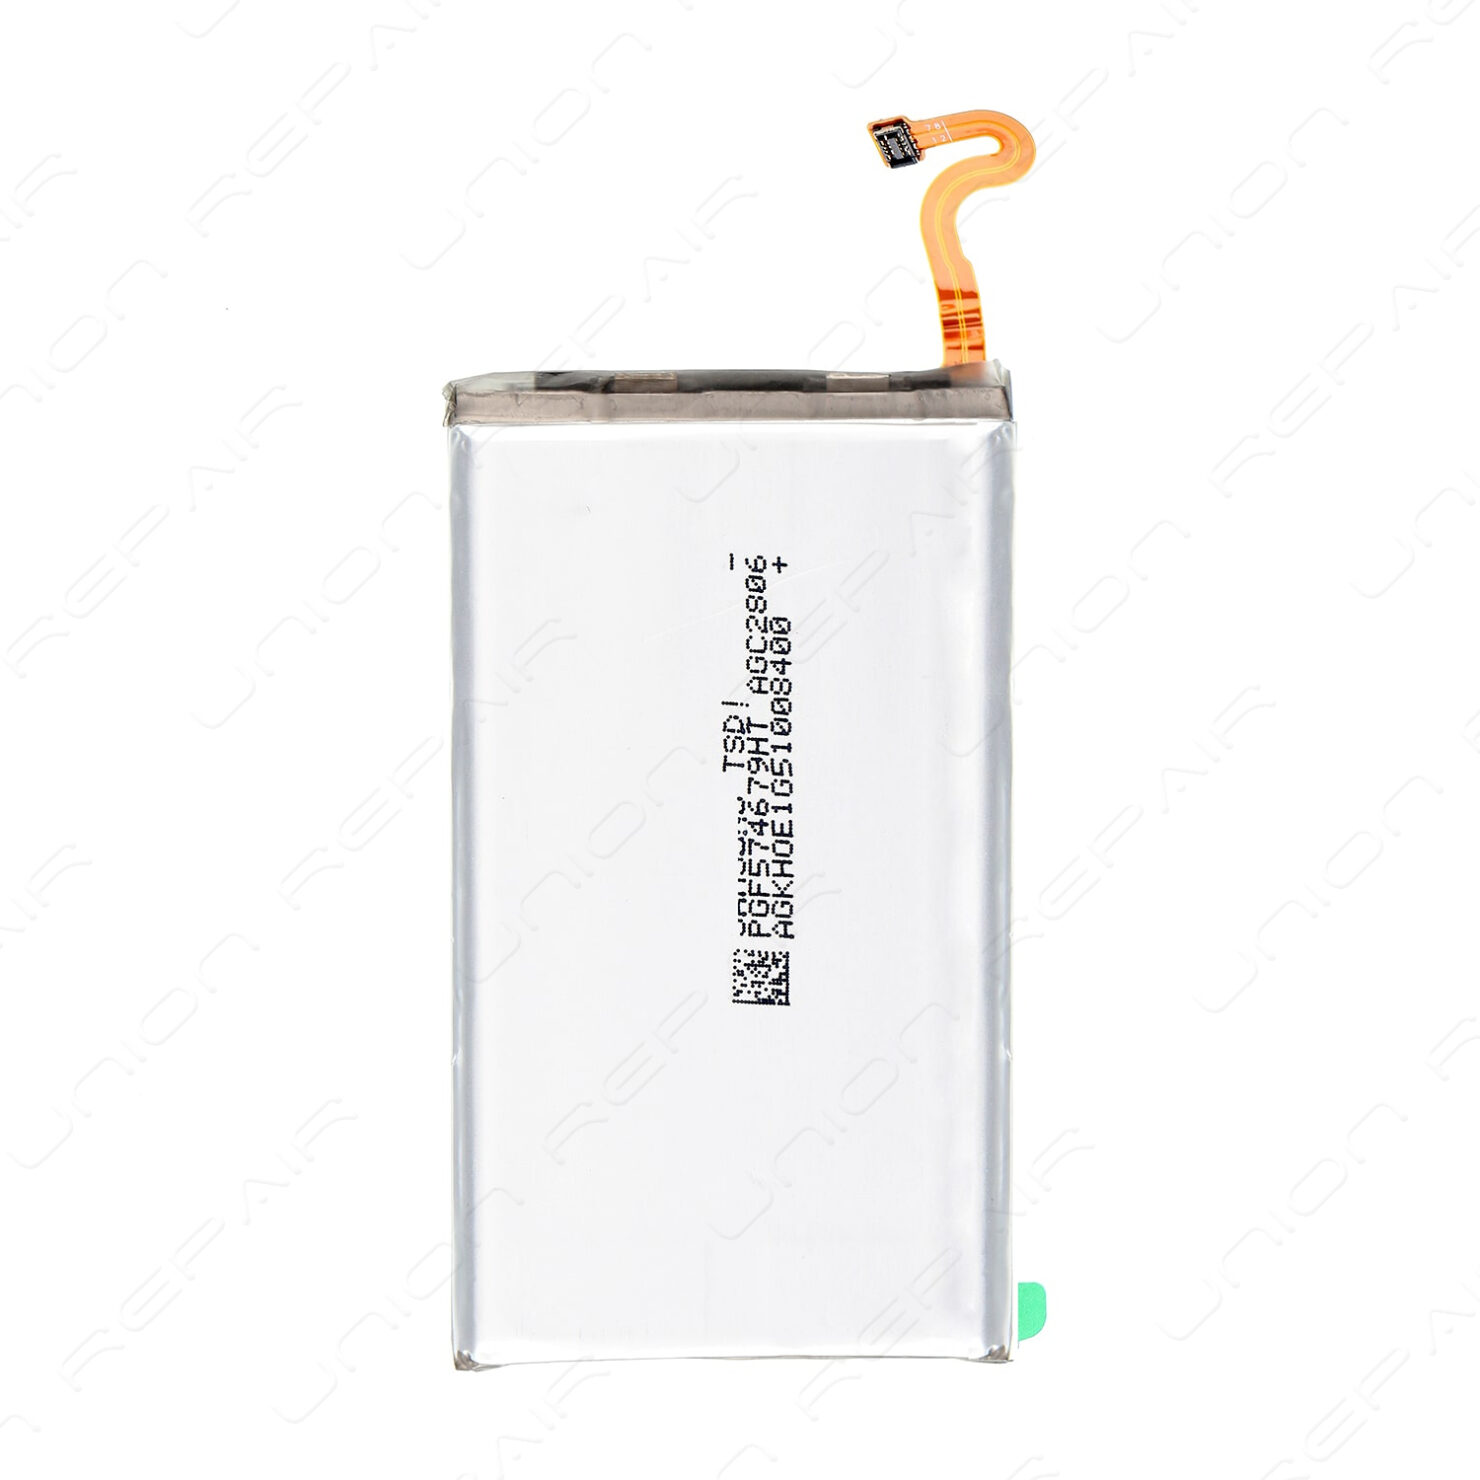 17233-replacement-for-samsung-galaxy-s9-plus-battery-3500mah-2